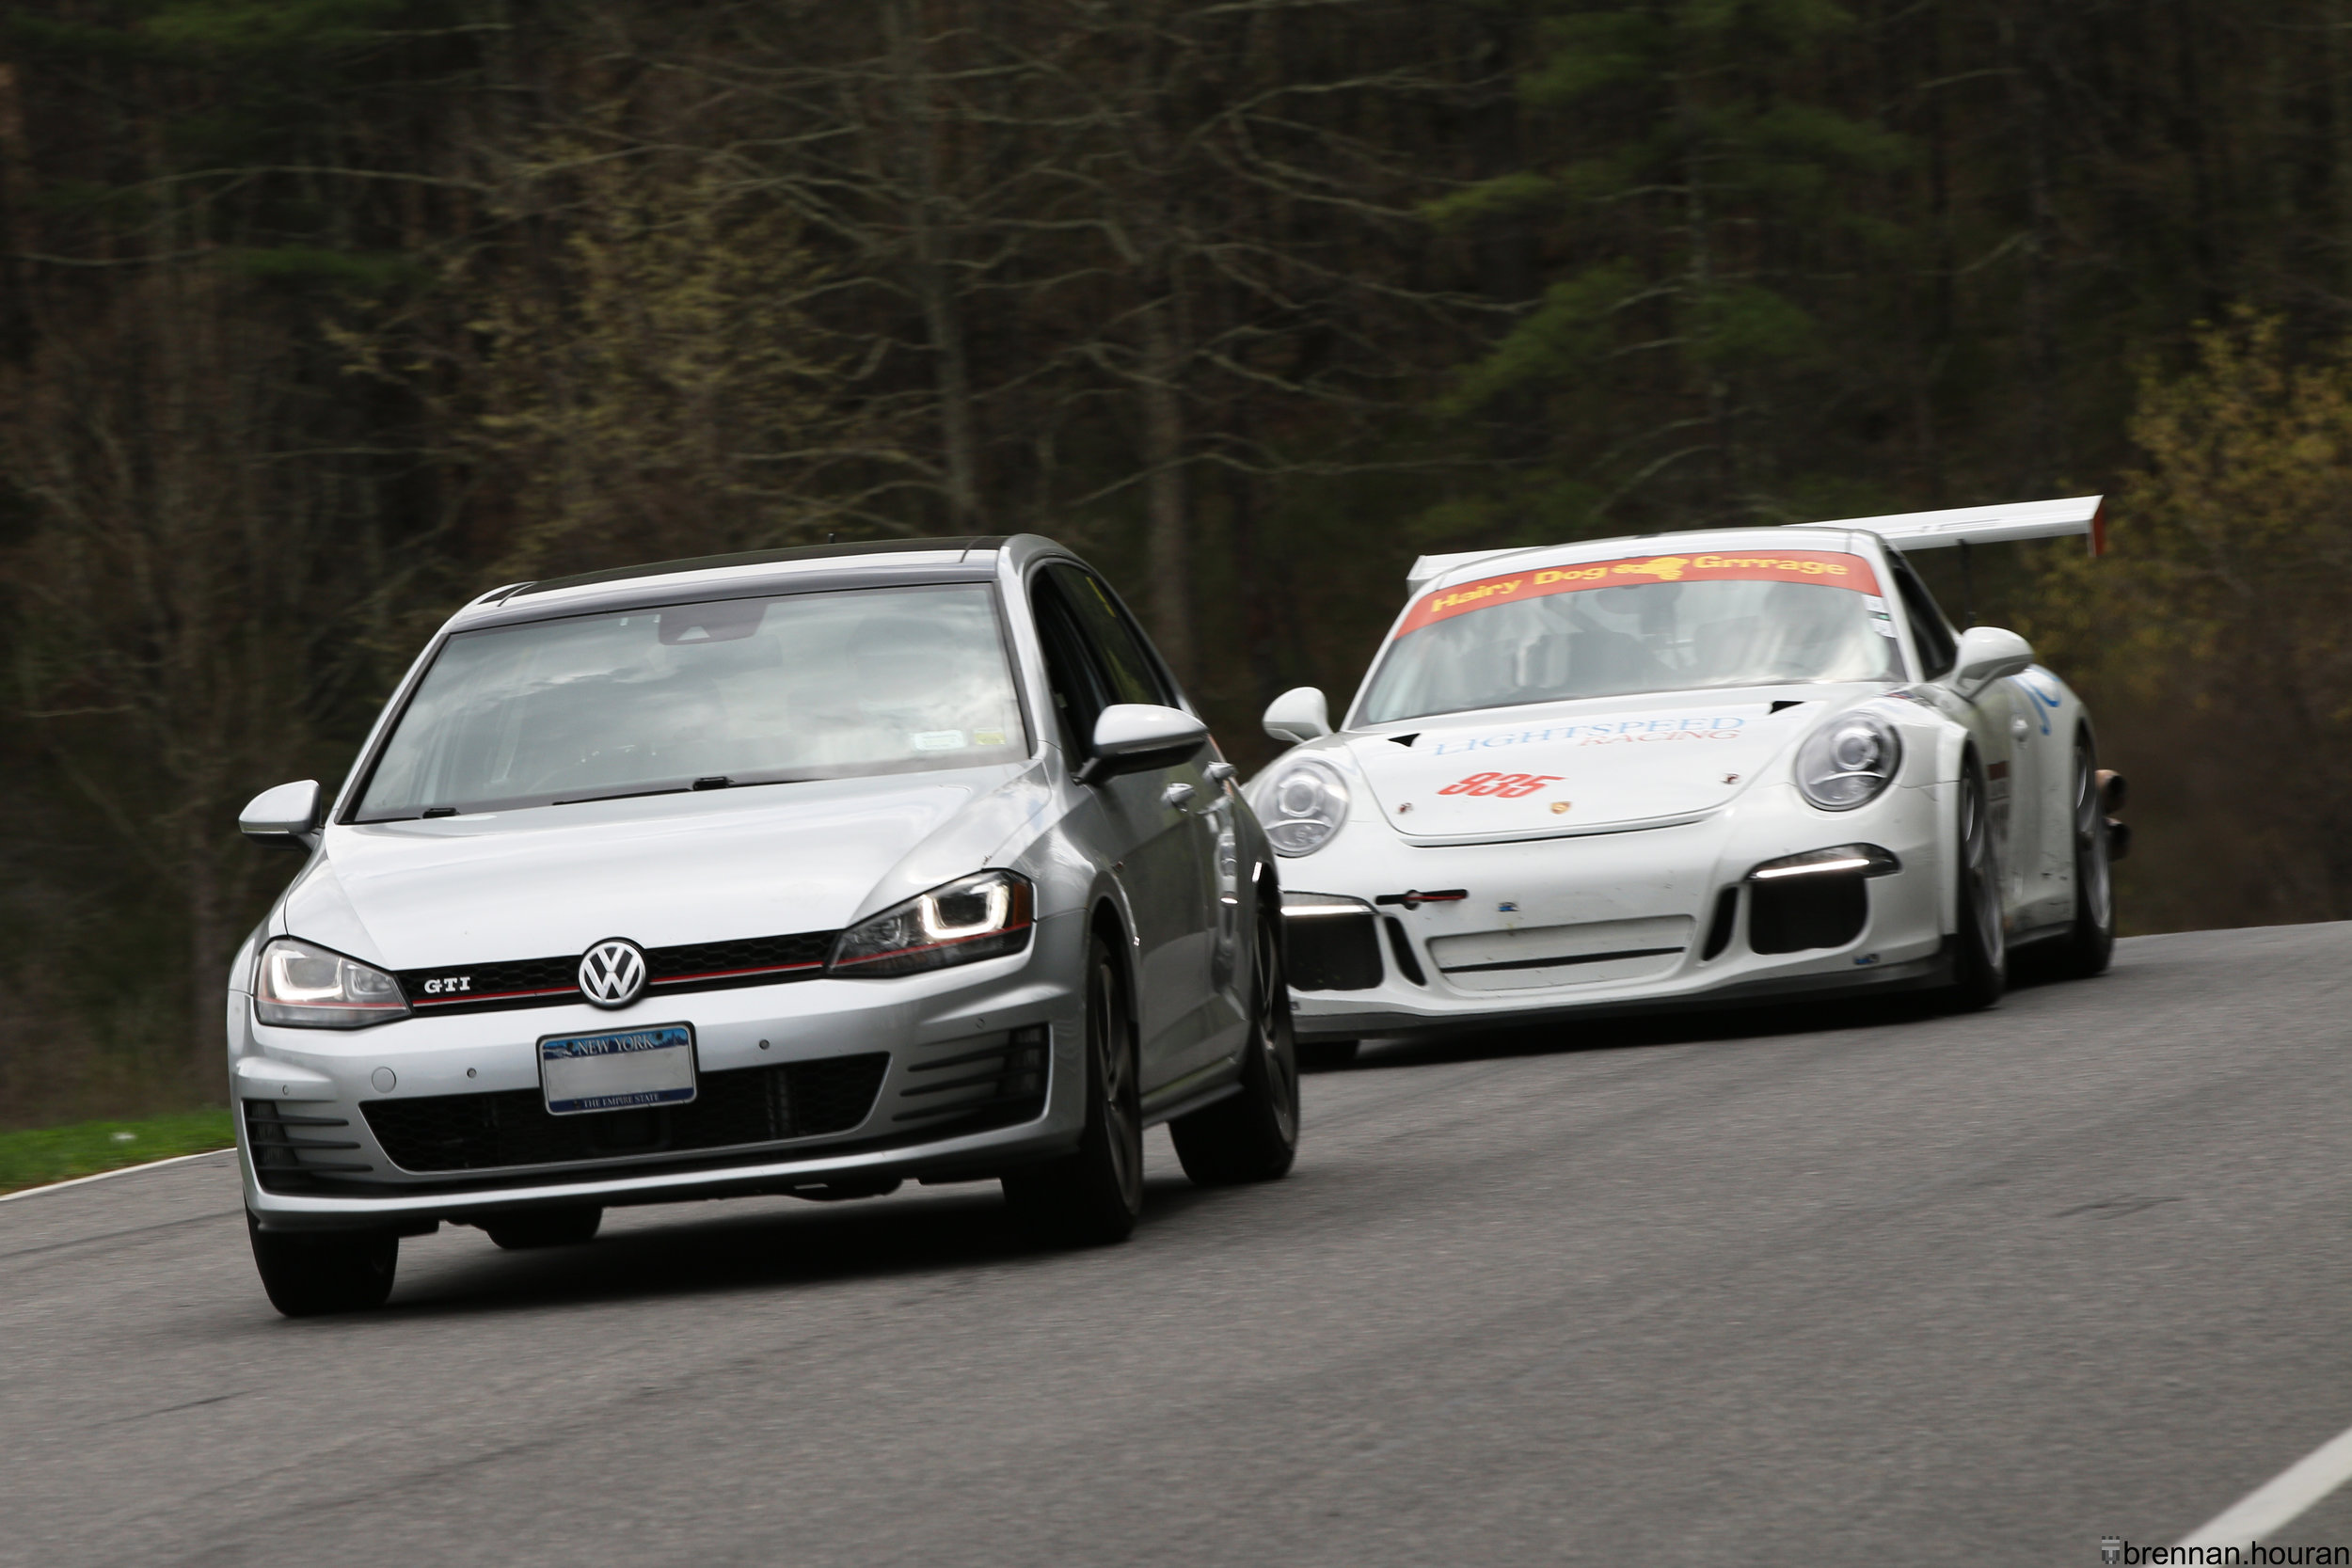 Above:    A Volkswagen Golf GTI is easy prey for the Porsche 991.1 GT3 Cup, even though the drivers possess the same skill.